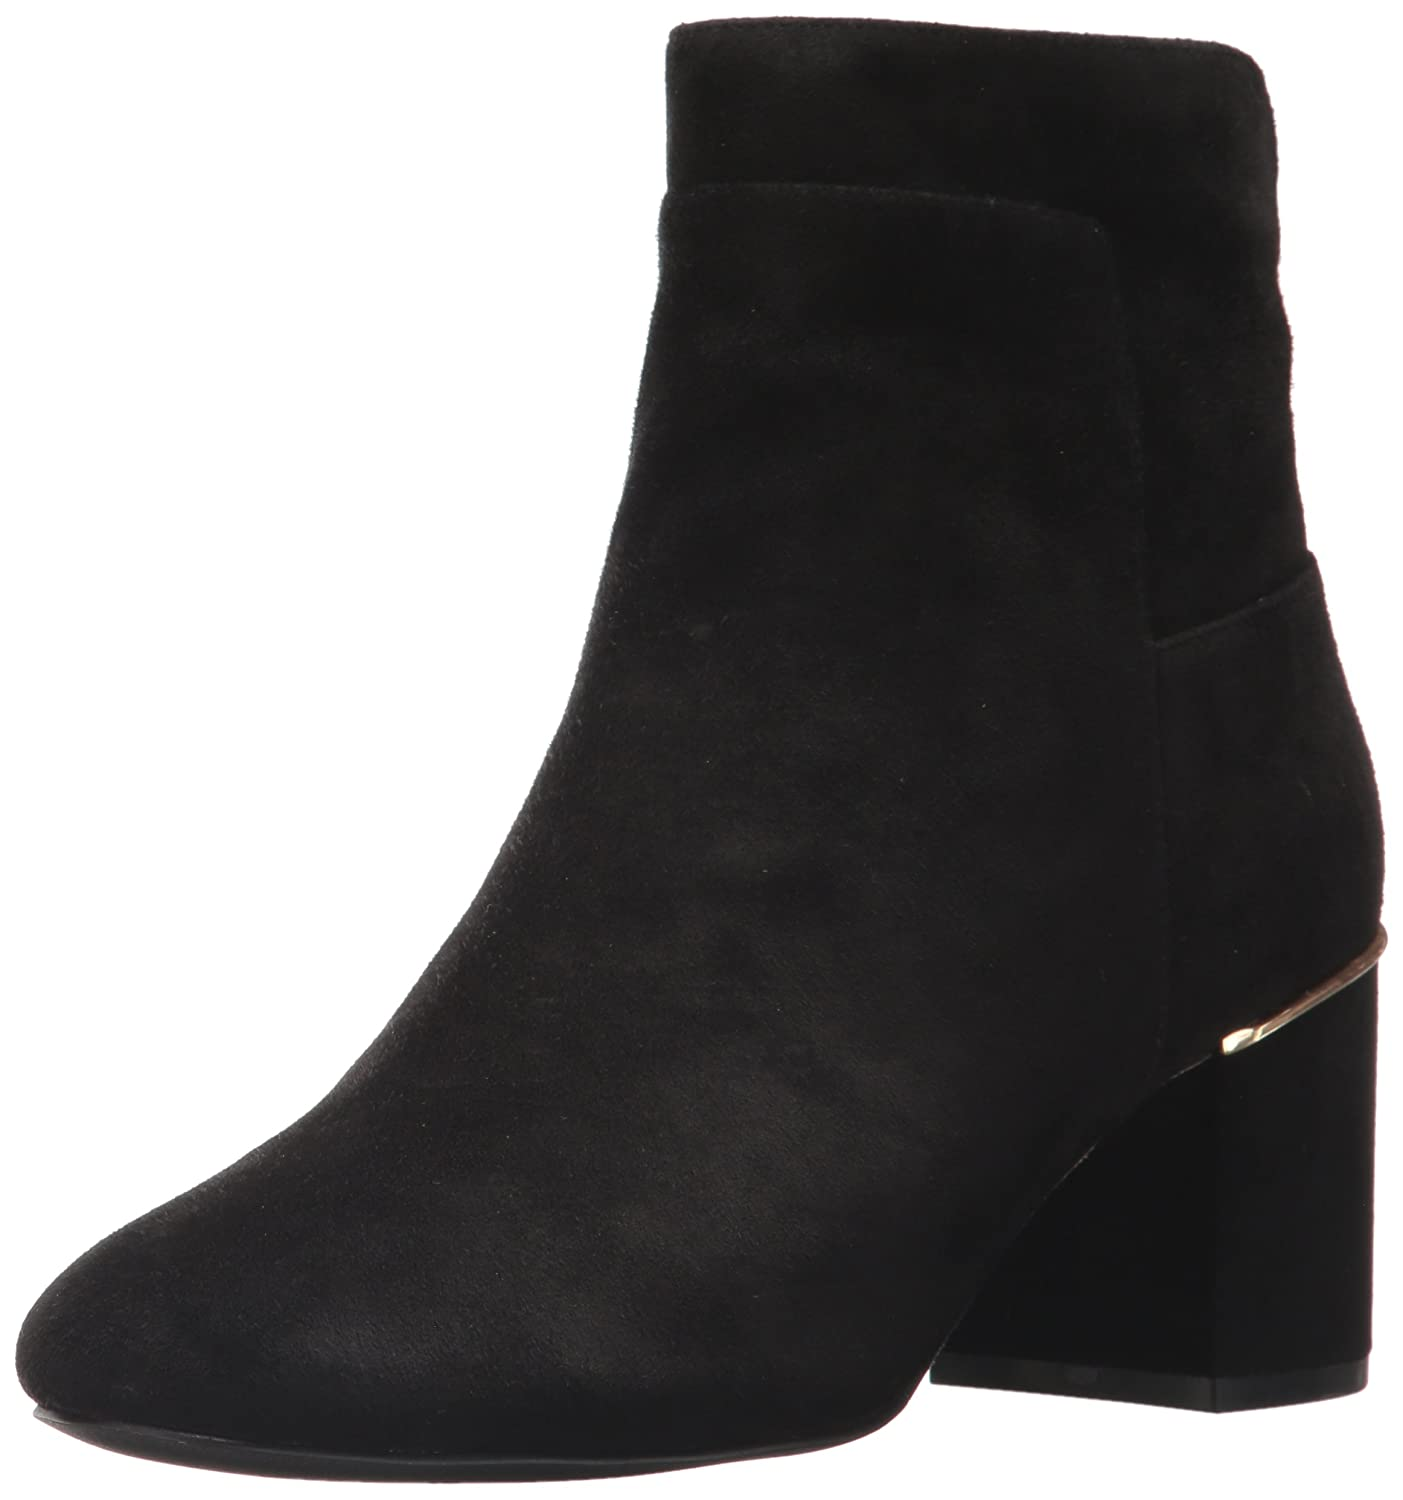 Cole Haan Women's Arden Grand Bootie Ankle Boot B01N25R3HK 5 B(M) US|Black Suede